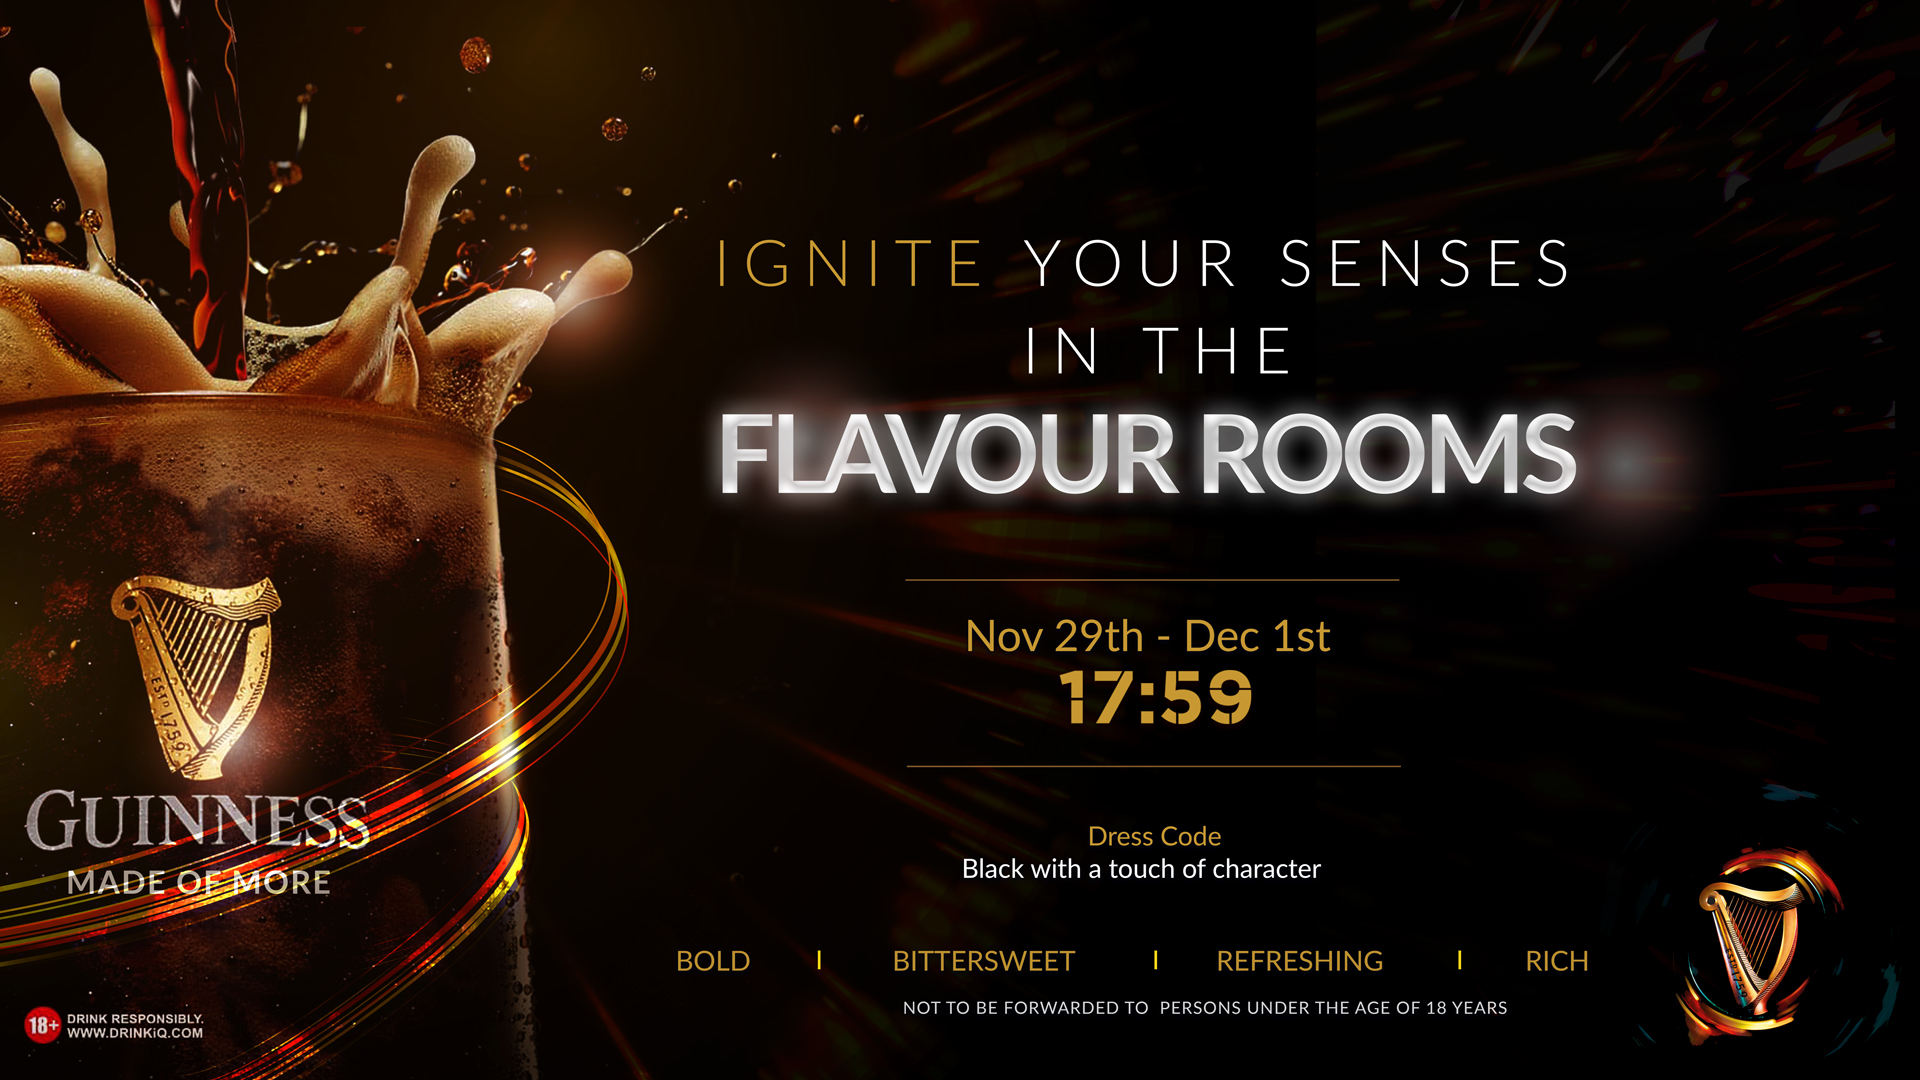 Come Excite Your Senses At The Guinness Flavour Rooms This Weekend